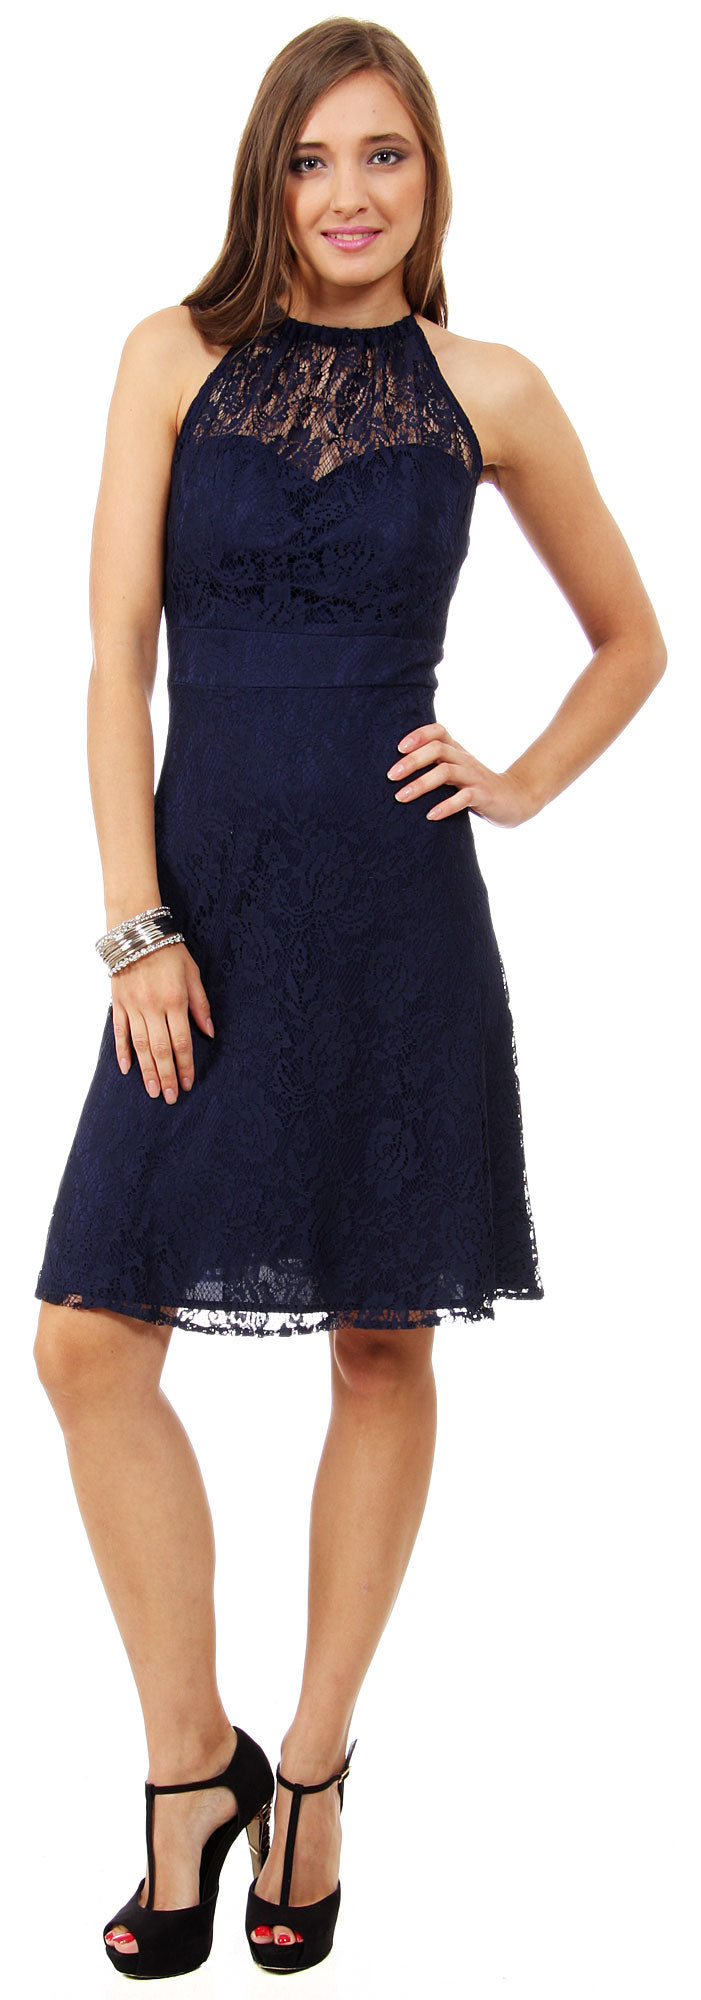 Image of Halter Neck Floral Lace Short Bridesmaid Party Dress in Navy